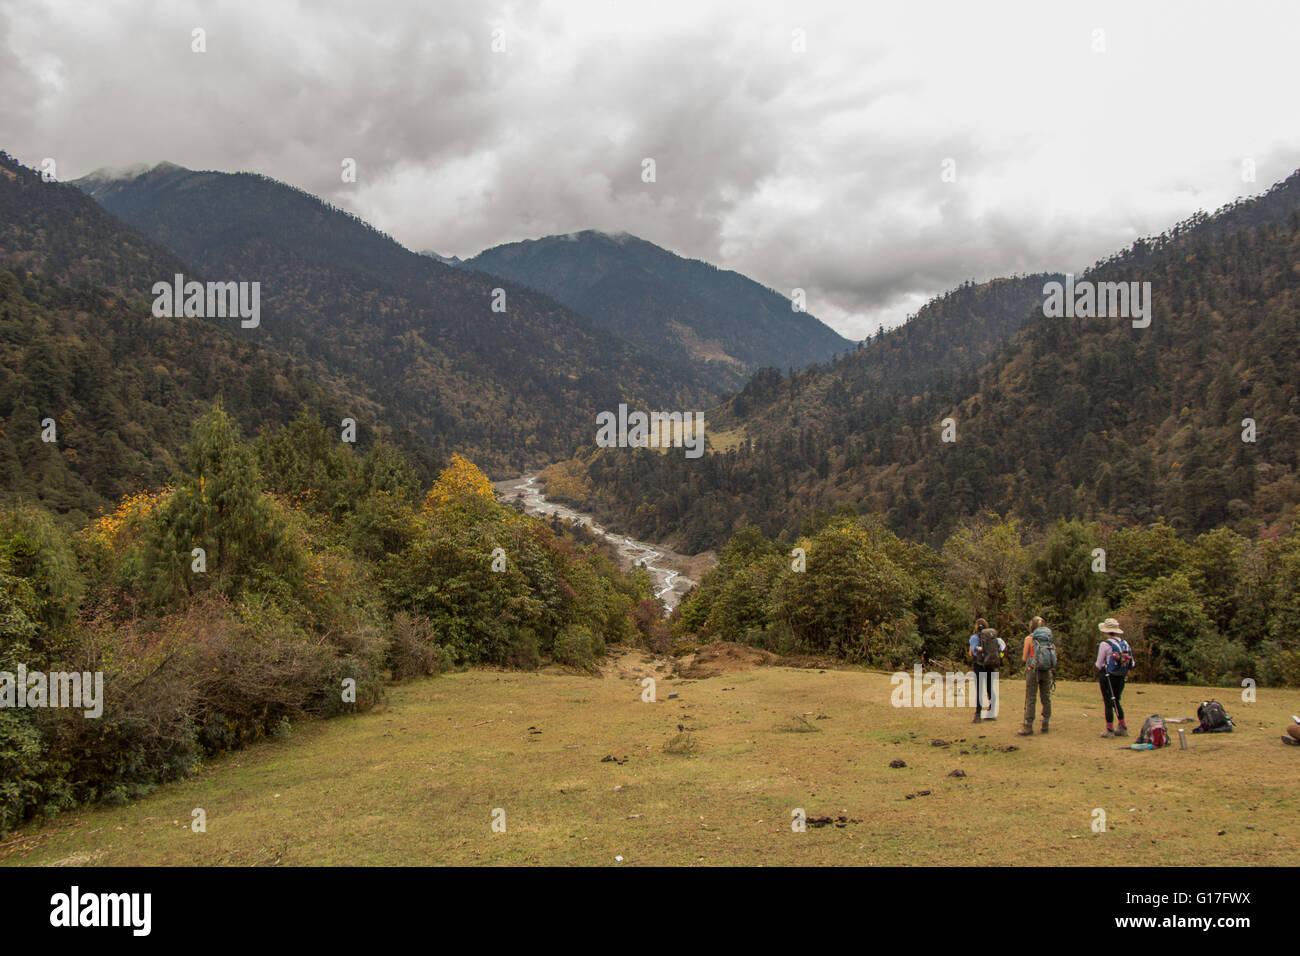 Hikers on the Merak-Sakteng trek in eastern Bhutan - Stock Image